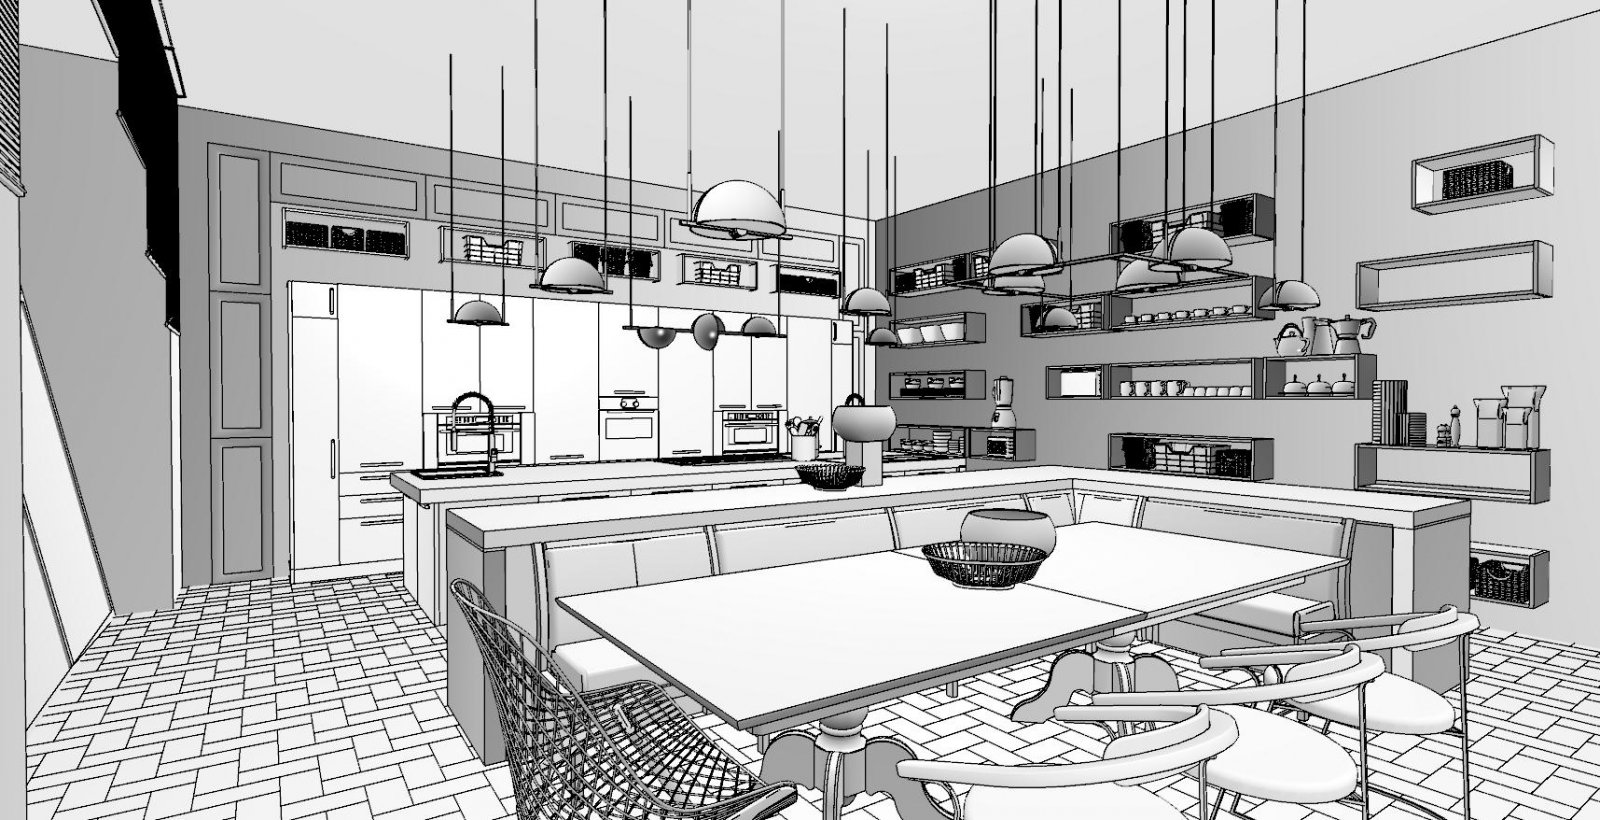 Interior Kitchen - Tech B&W